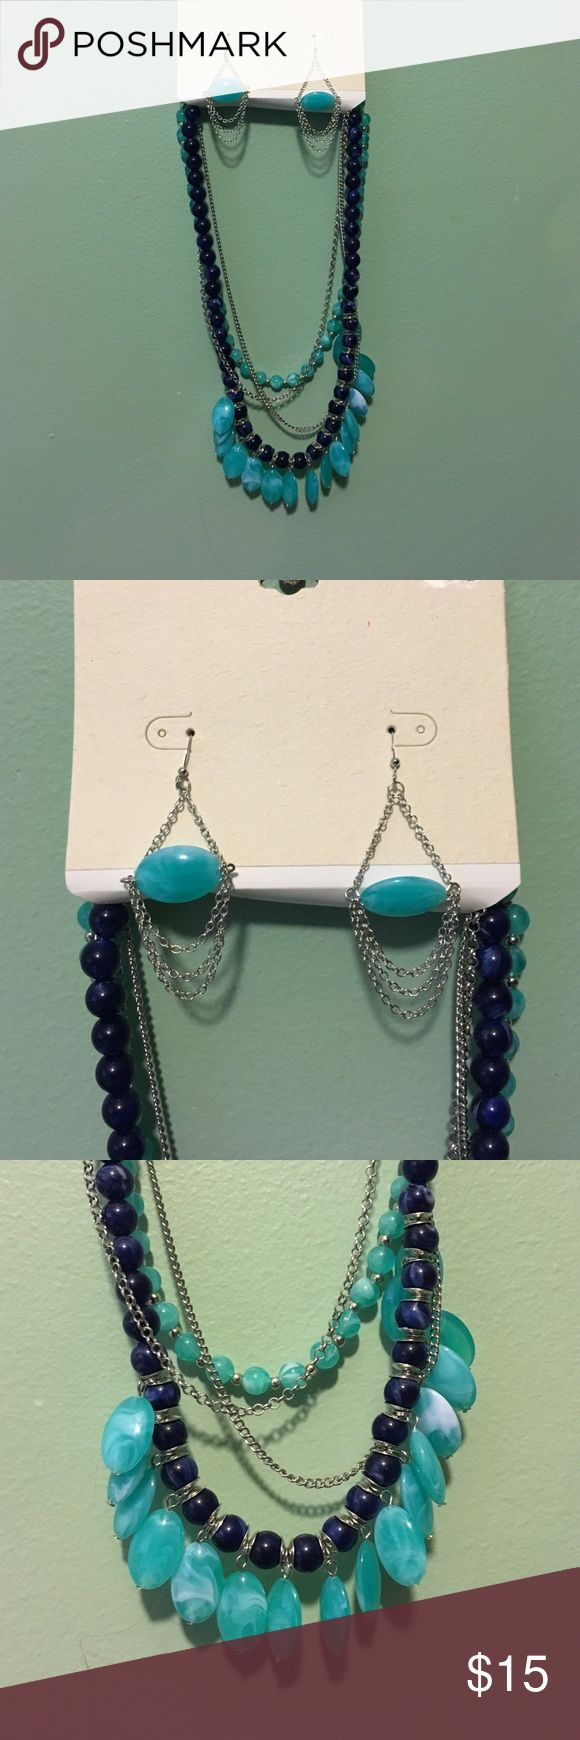 NWT. Necklace & Earring Set New with tags. Necklace & earring set. Navy blue, sky blue, & silver colors. Multi layered. (Item 849)❌No Trades ❌No Holds ✅Posh Only ✅ Smoke Free Home ✅Offers Considered ✅Special Bundle Deals (just ask!) Jewelry Necklaces